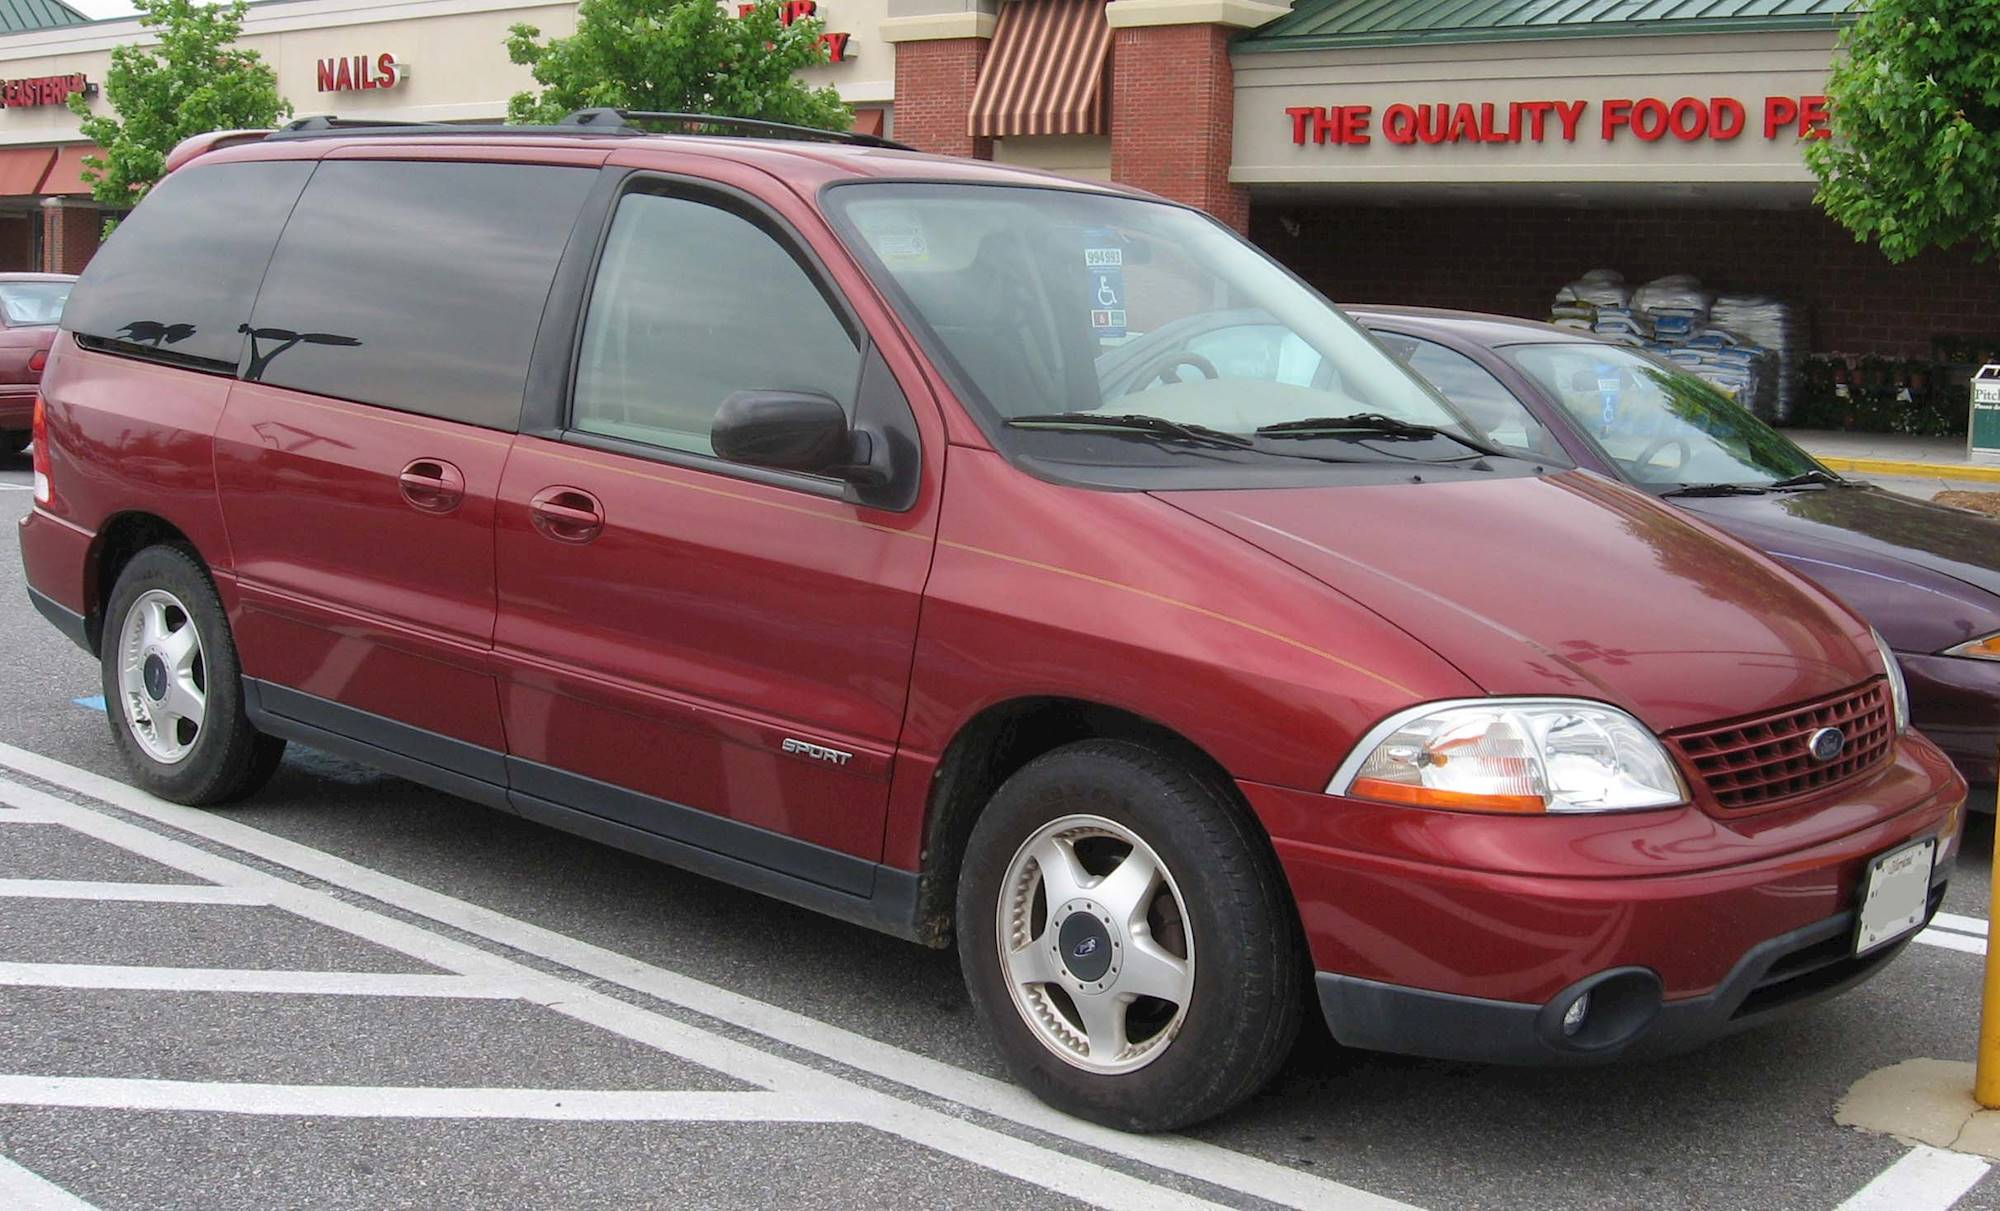 2001 ford windstar lx 4dr wagon 4 spd auto w od 2001 ford windstar lx 4dr wagon 4 spd